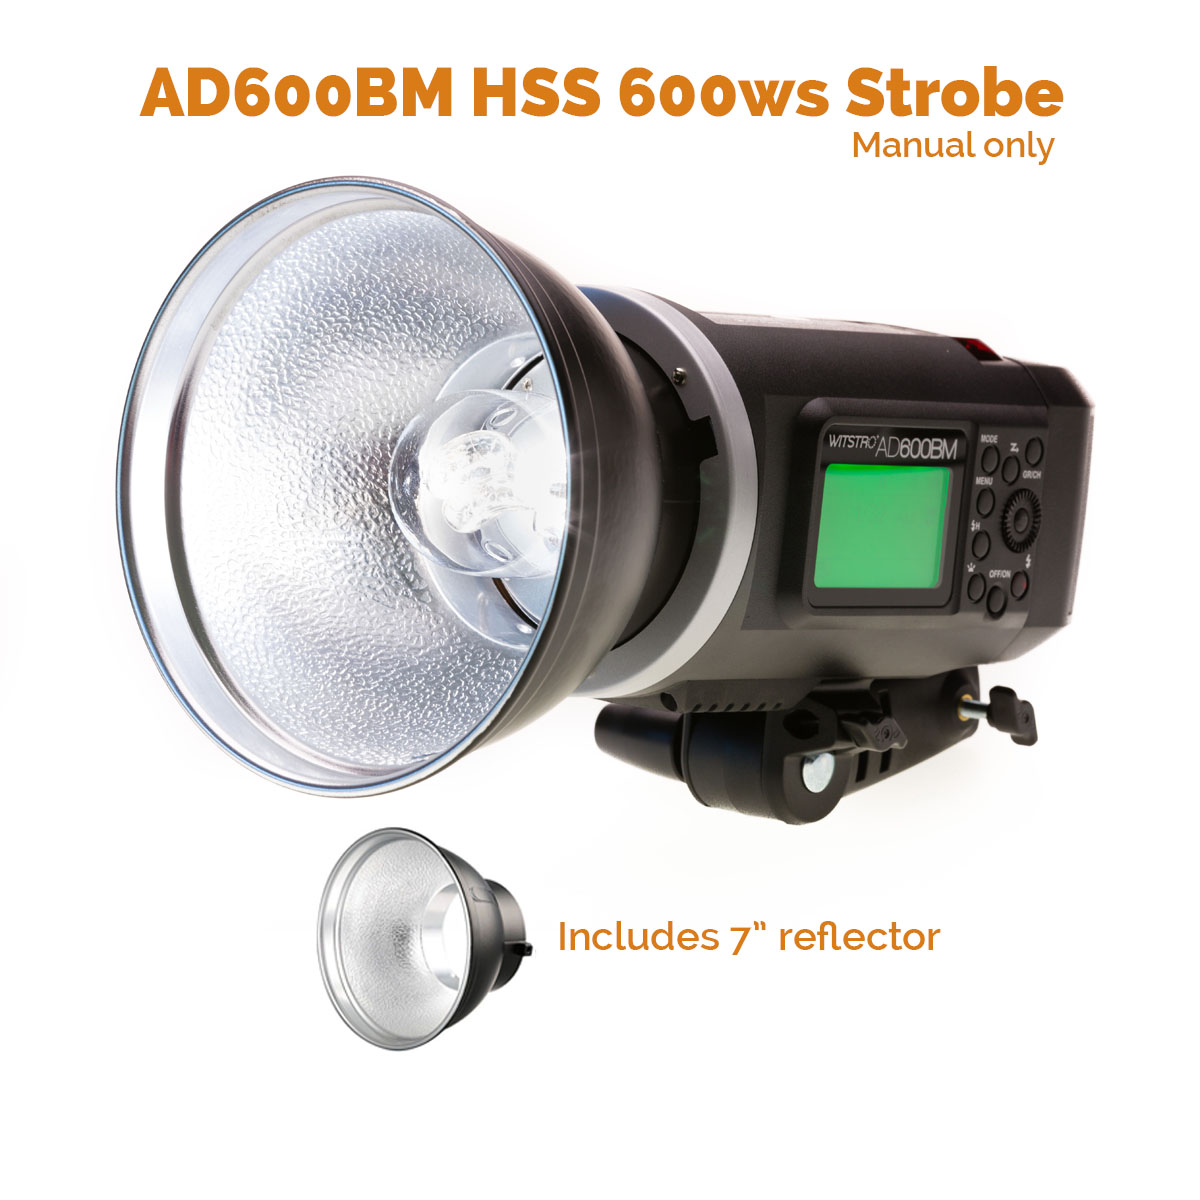 Strobes, Monolights and More : The MoLight Store, Get